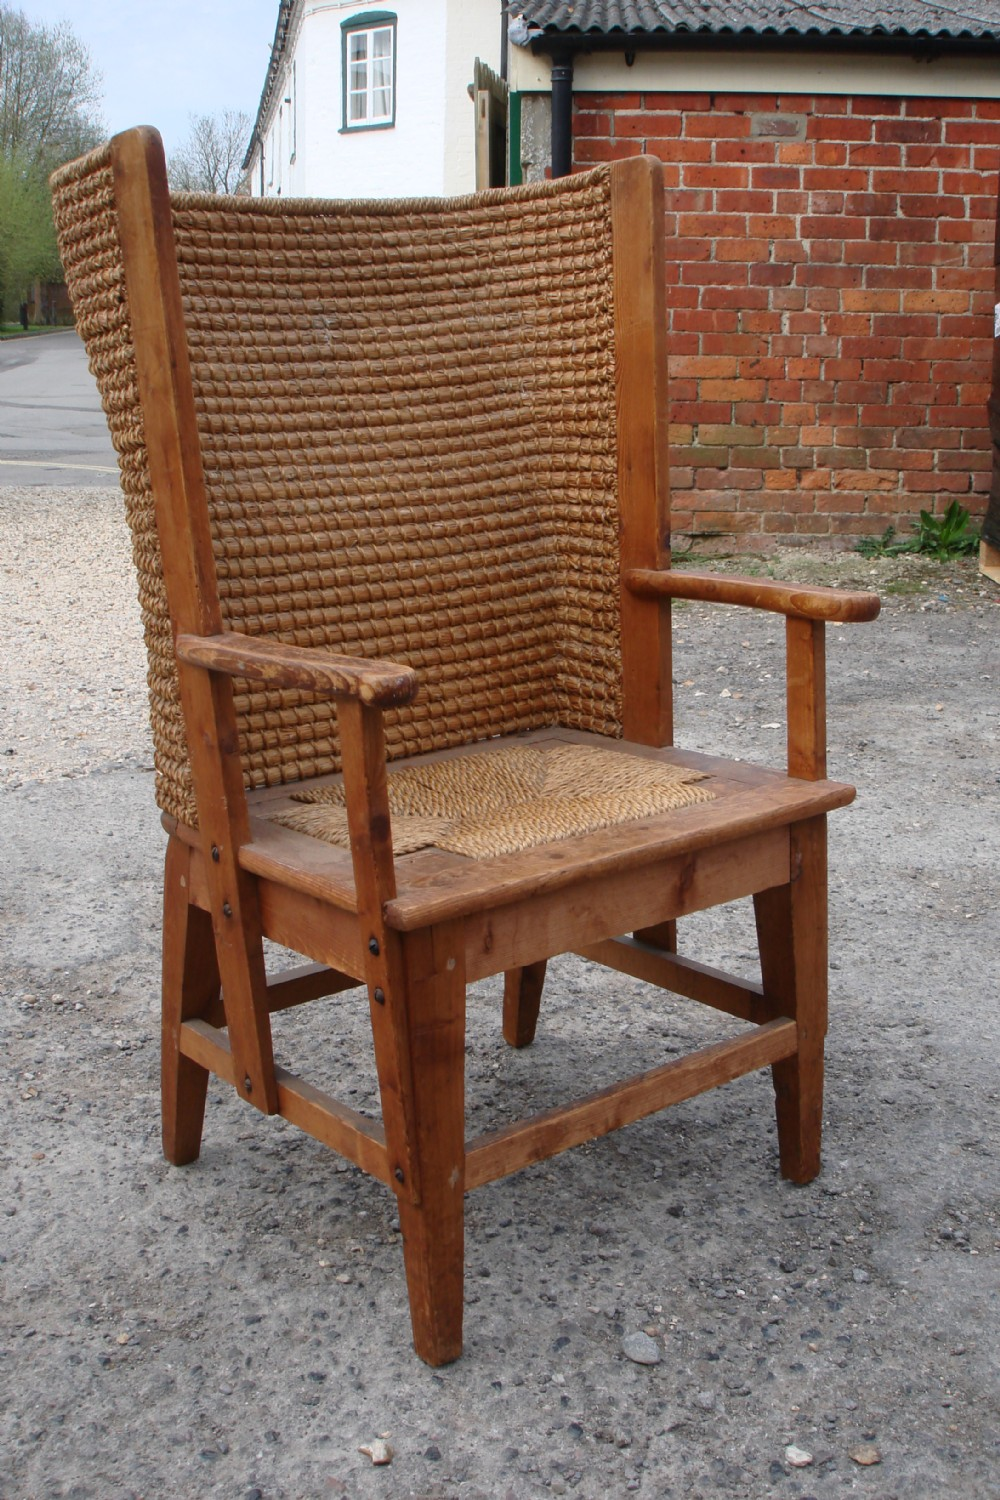 orkney chair - Orkney Chair 339786 Sellingantiques.co.uk